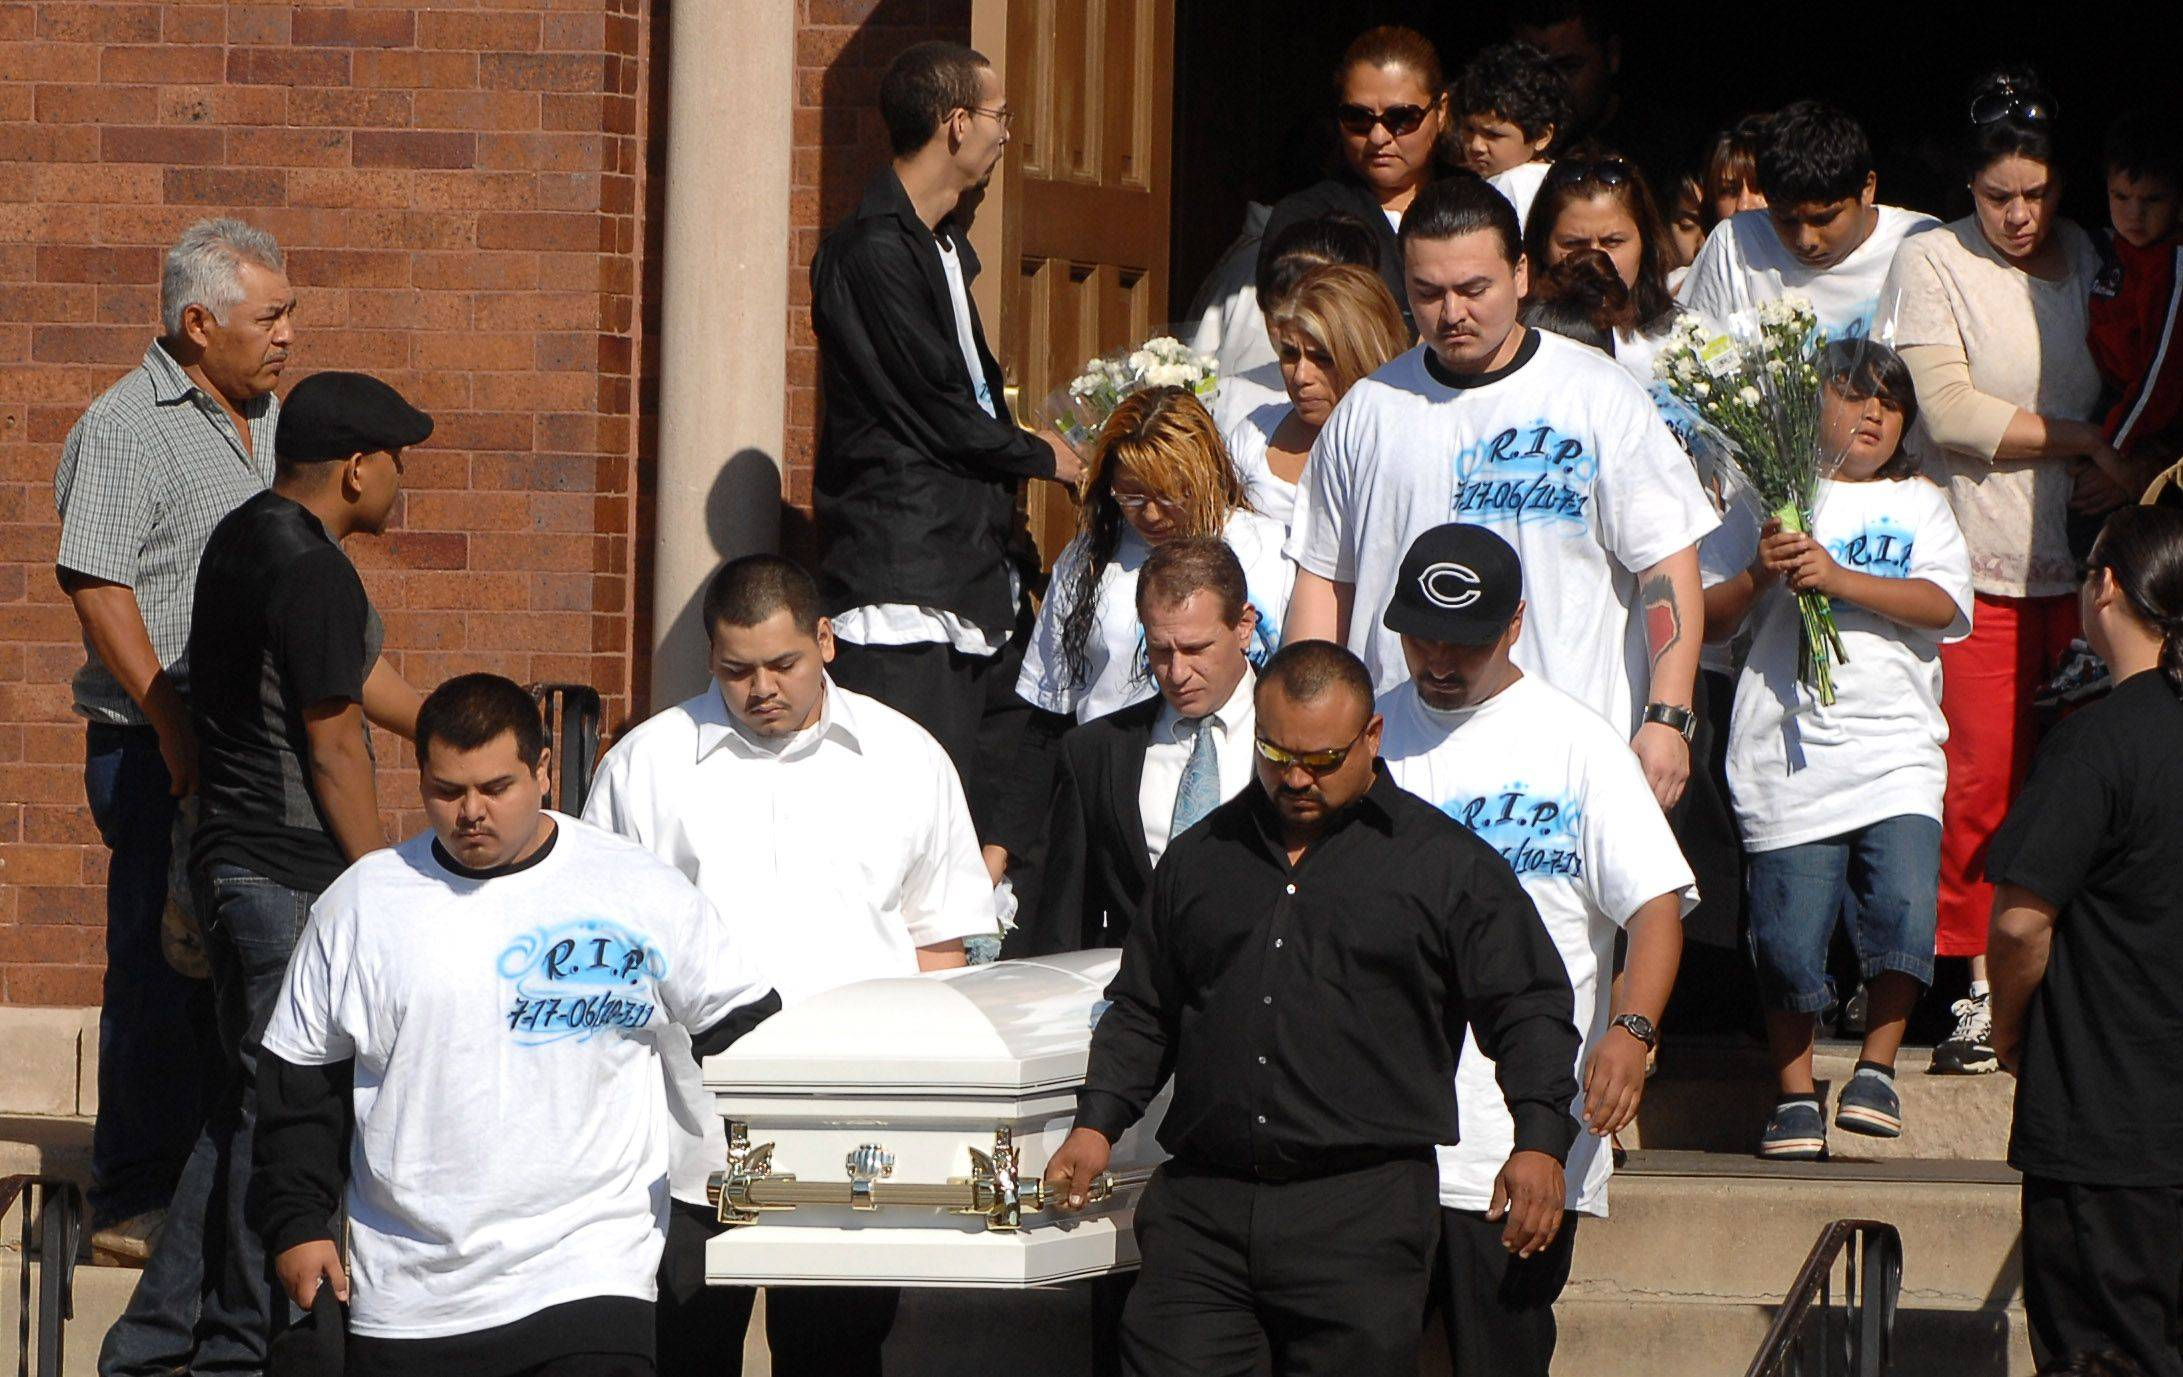 Pallbearers carry out the casket following the funeral for Eric M. Galarza Jr., 5, at St. Joseph Catholic Church. The boy was killed in a gang-related shooting in Elgin. His parents, Eric and Denisse, are following behind the casket.